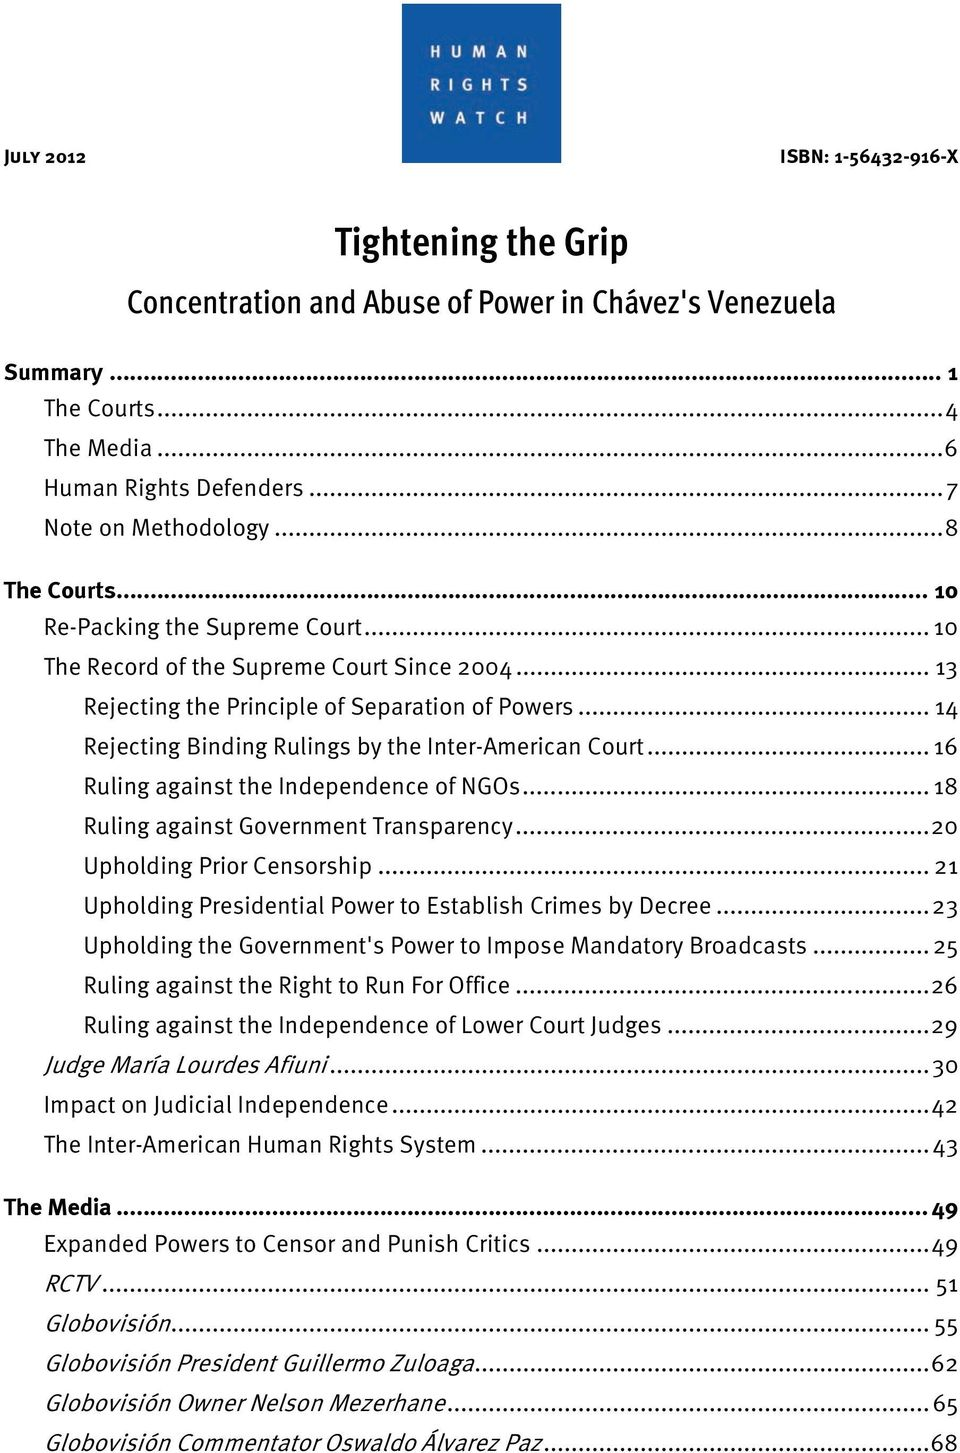 .. 14 Rejecting Binding Rulings by the Inter-American Court... 16 Ruling against the Independence of NGOs... 18 Ruling against Government Transparency... 20 Upholding Prior Censorship.